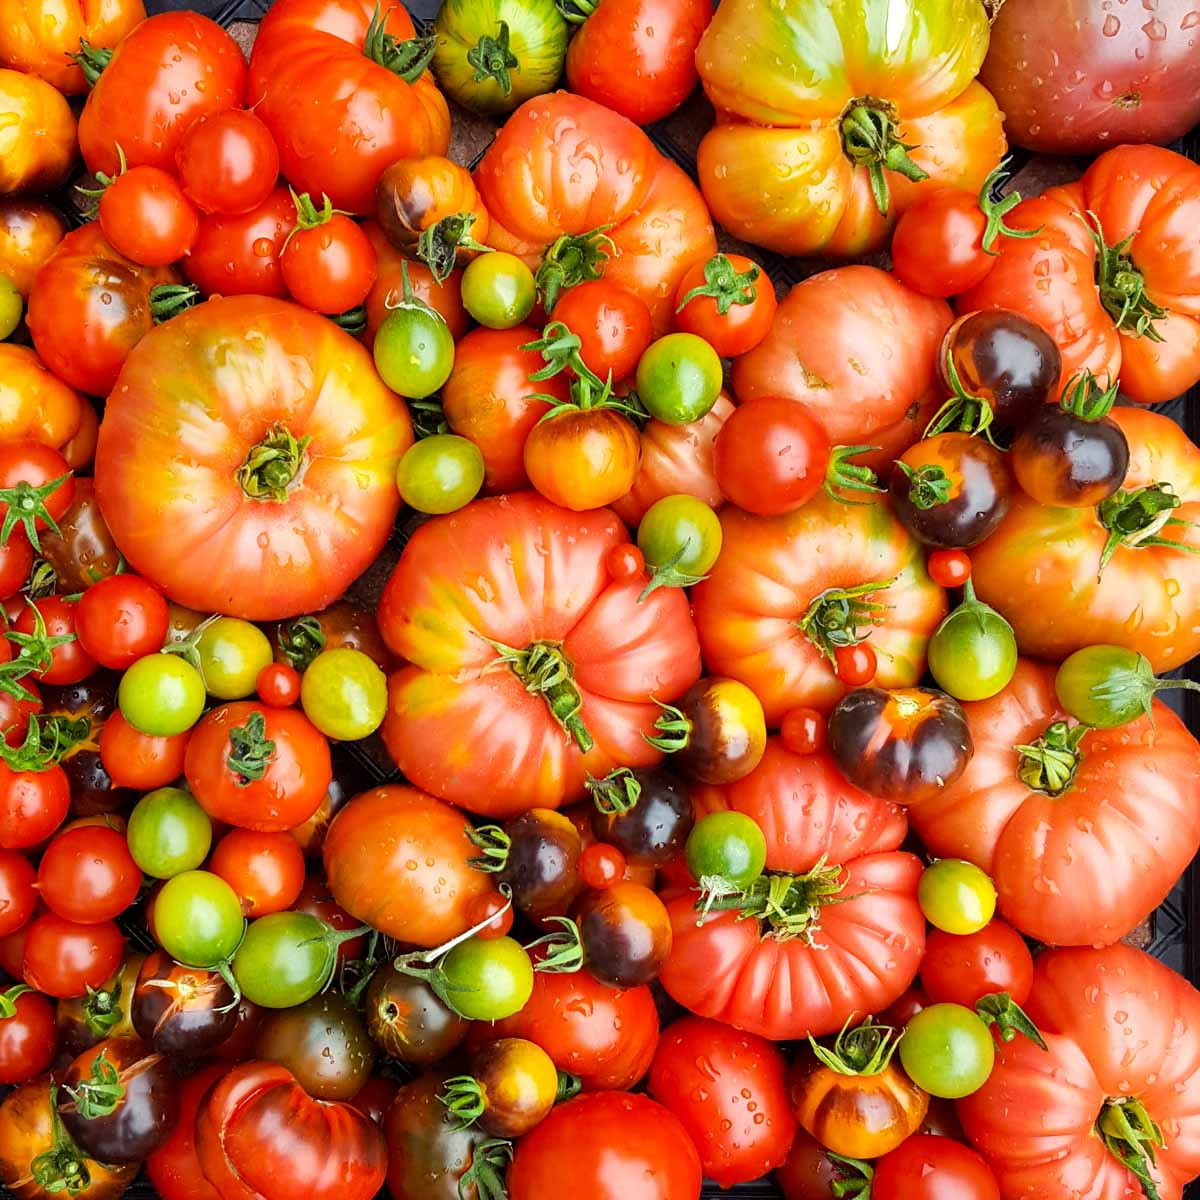 A picture of tomatoes of a variety of sizes and color